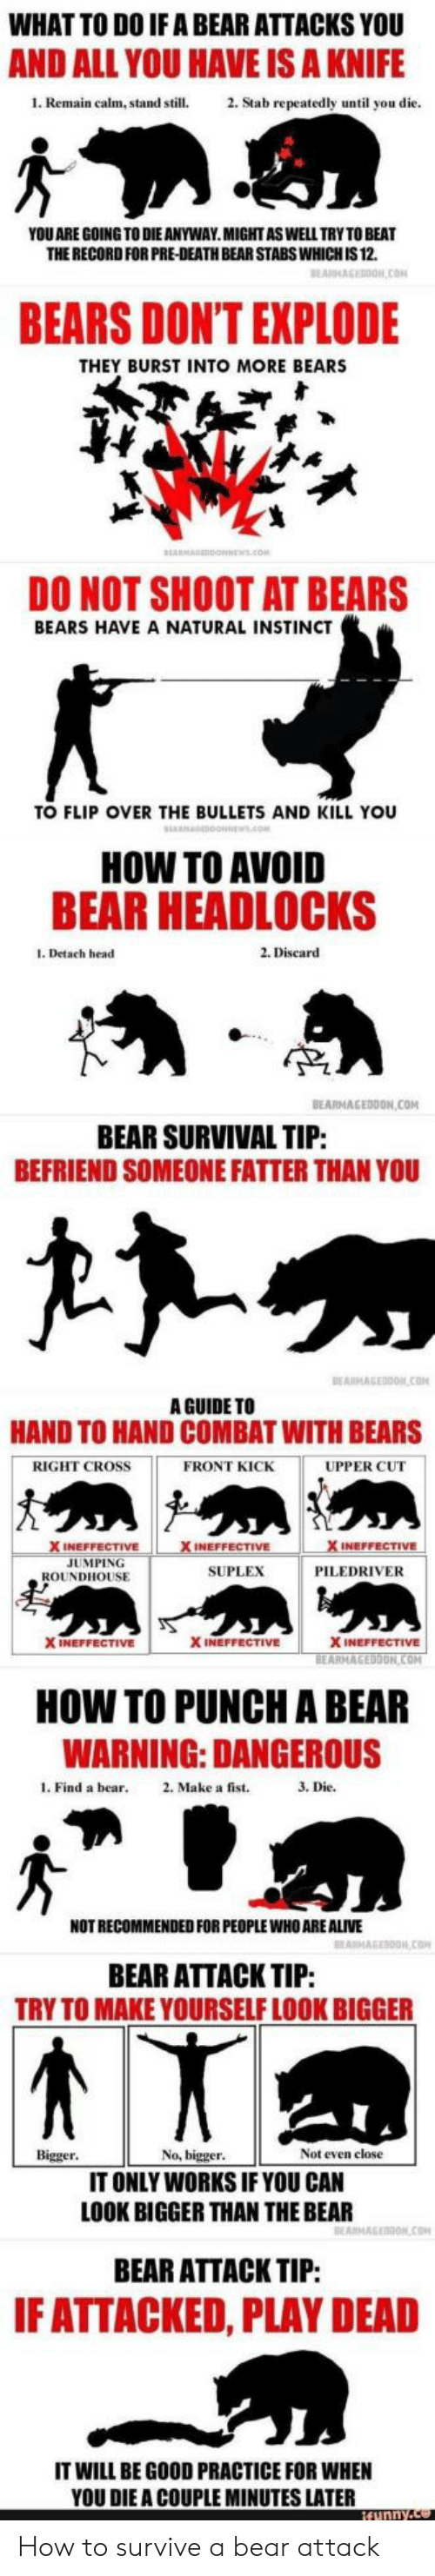 roundhouse: WHAT TO DO IF A BEAR ATTACKS YOU  AND ALL YOU HAVE IS A KNIFE  1. Remain calm, stand still.2. Stab repeatedly until you die  YOU ARE GOING TO DIE ANYWAY.MIGHTASWELL TRY TO BEAT  THE RECORD FOR PRE-DEATH BEAR STABS WHICH IS 12.  BEARS DONT EXPLODE  THEY BURST INTO MORE BEARS  DO NOT SHOOT AT BEARS  BEARS HAVE A NATURAL INSTINCT  TO FLIP OVER THE BULLETS AND KILL YOU  HOW TO AVOID  BEAR HEADLOCKS  1. Detach head  2. Discard  TP  BEARMAGEDDON COM  BEAR SURVIVAL TIP  BEFRIEND SOMEONE FATTER THAN YOU  A GUIDE TO  HAND TO HAND COMBAT WITH BEARS  RIGHT CROSS  FRONT KICK  UPPER CUT  INEFFECTIVE  JUMPING  SUPLEX  PILEDRIVER  ROUNDHOUSE  X INEFFECTIVE  X INEFFECTIVE  ON  HOW TO PUNCH A BEAR  WARNING: DANGEROUS  l. Find a bear 2. Make a fist.  3. Die.  NOT RECOMMENDED FOR PEOPLE WHO ARE ALIVE  BEAR ATTACK TIP:  TRY TO MAKE YOURSELF LOOK BIGGER  Bigger  No, bigger  Not even close  IT ONLY WORKS IF YOU CAN  LOOK BIGGER THAN THE BEAR  BEAR ATTACK TIP:  F ATTACKED, PLAY DEAD  IT WILL BE GOOD PRACTICE FOR WHEN  YOU DIE A COUPLE MINUTES LATER How to survive a bear attack